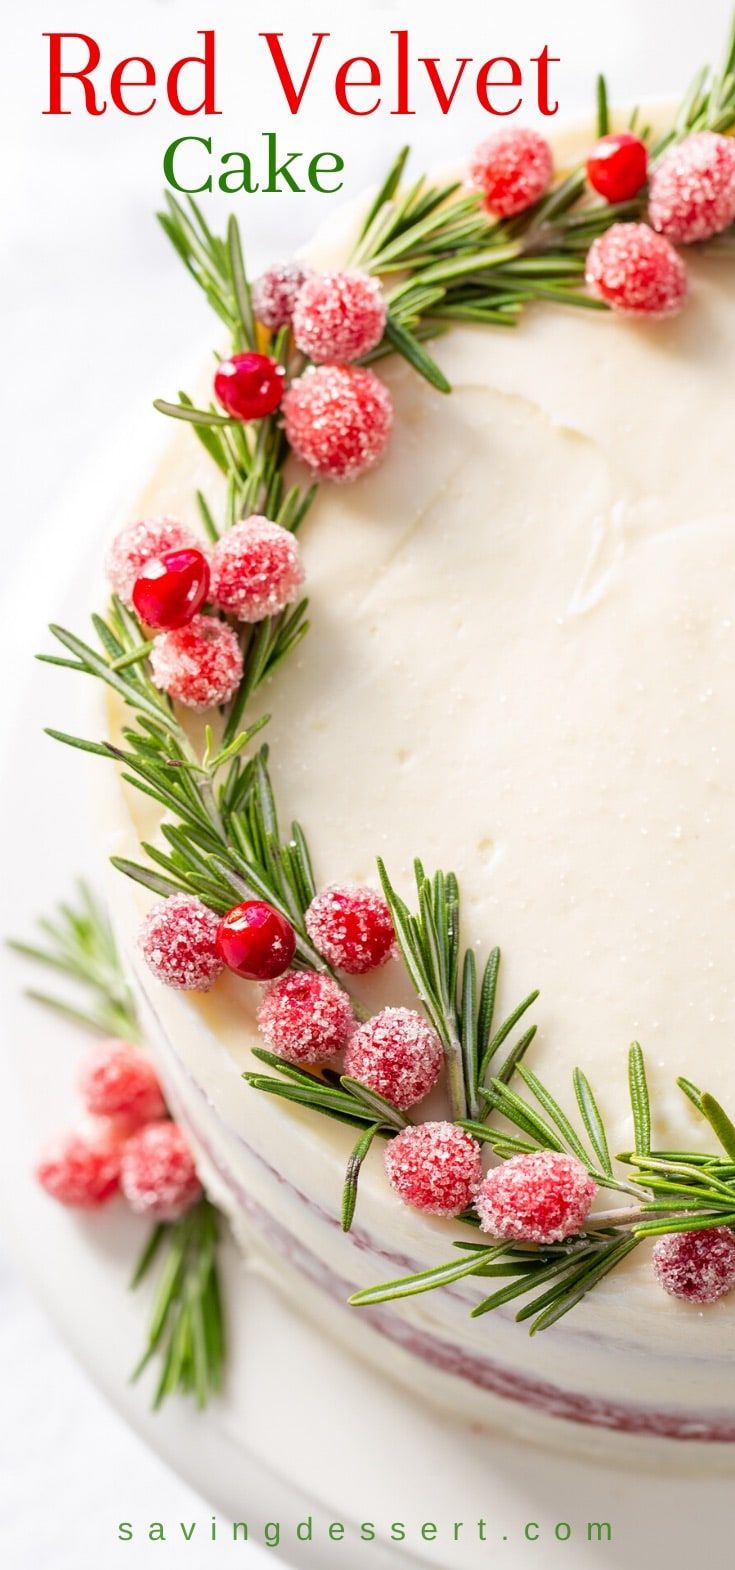 Red velvet cake topped with sugared cranberries and rosemary